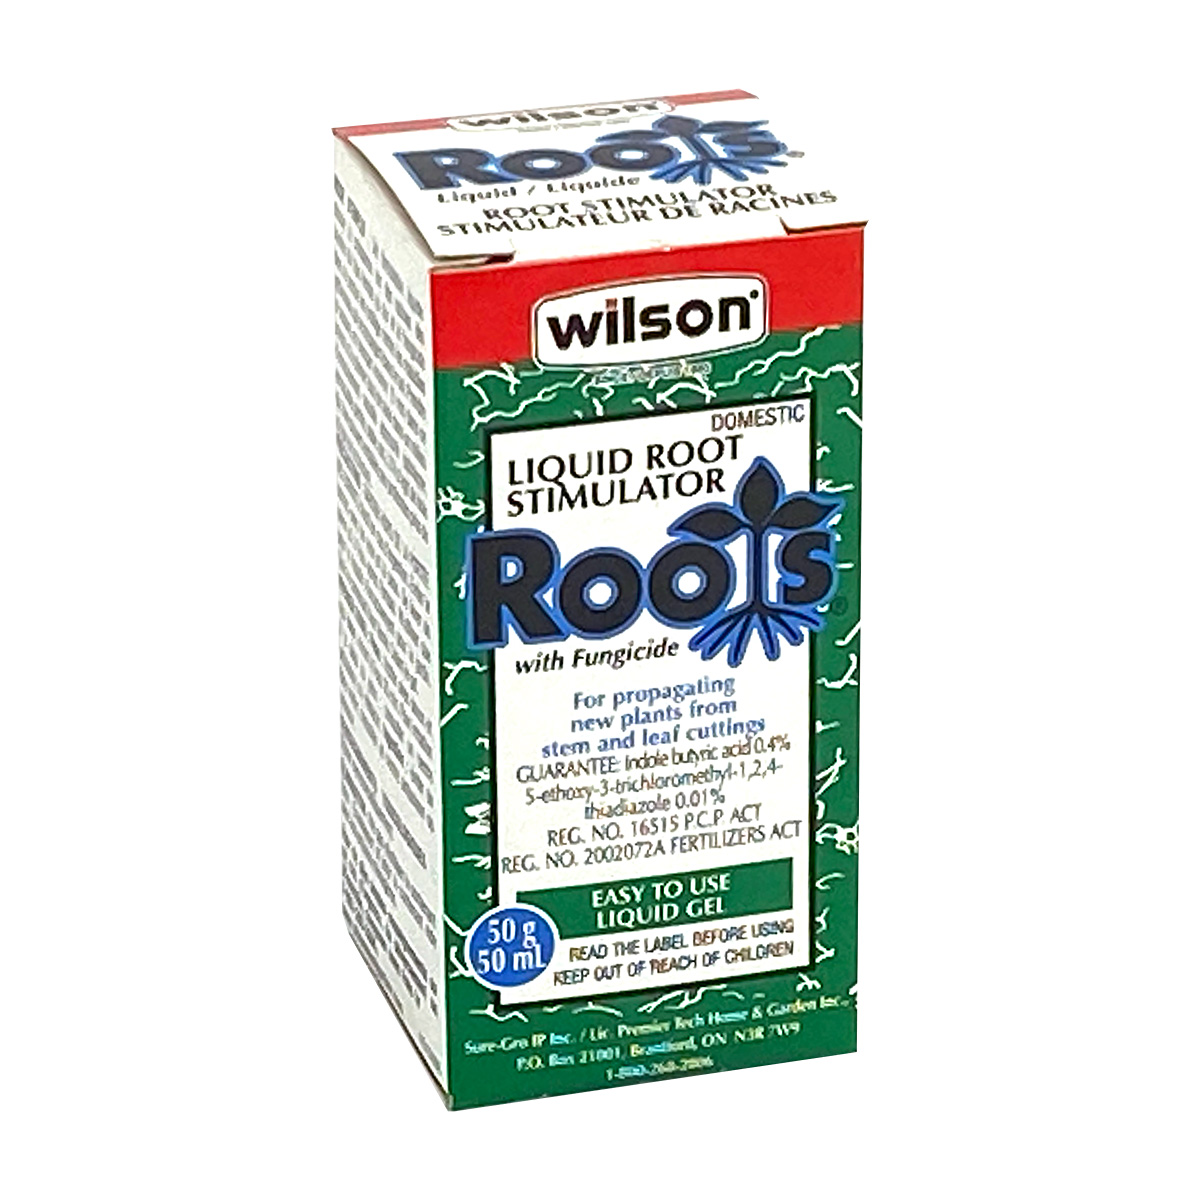 Wilson_Roots_LiquidRootStimulator_50ml.jpg